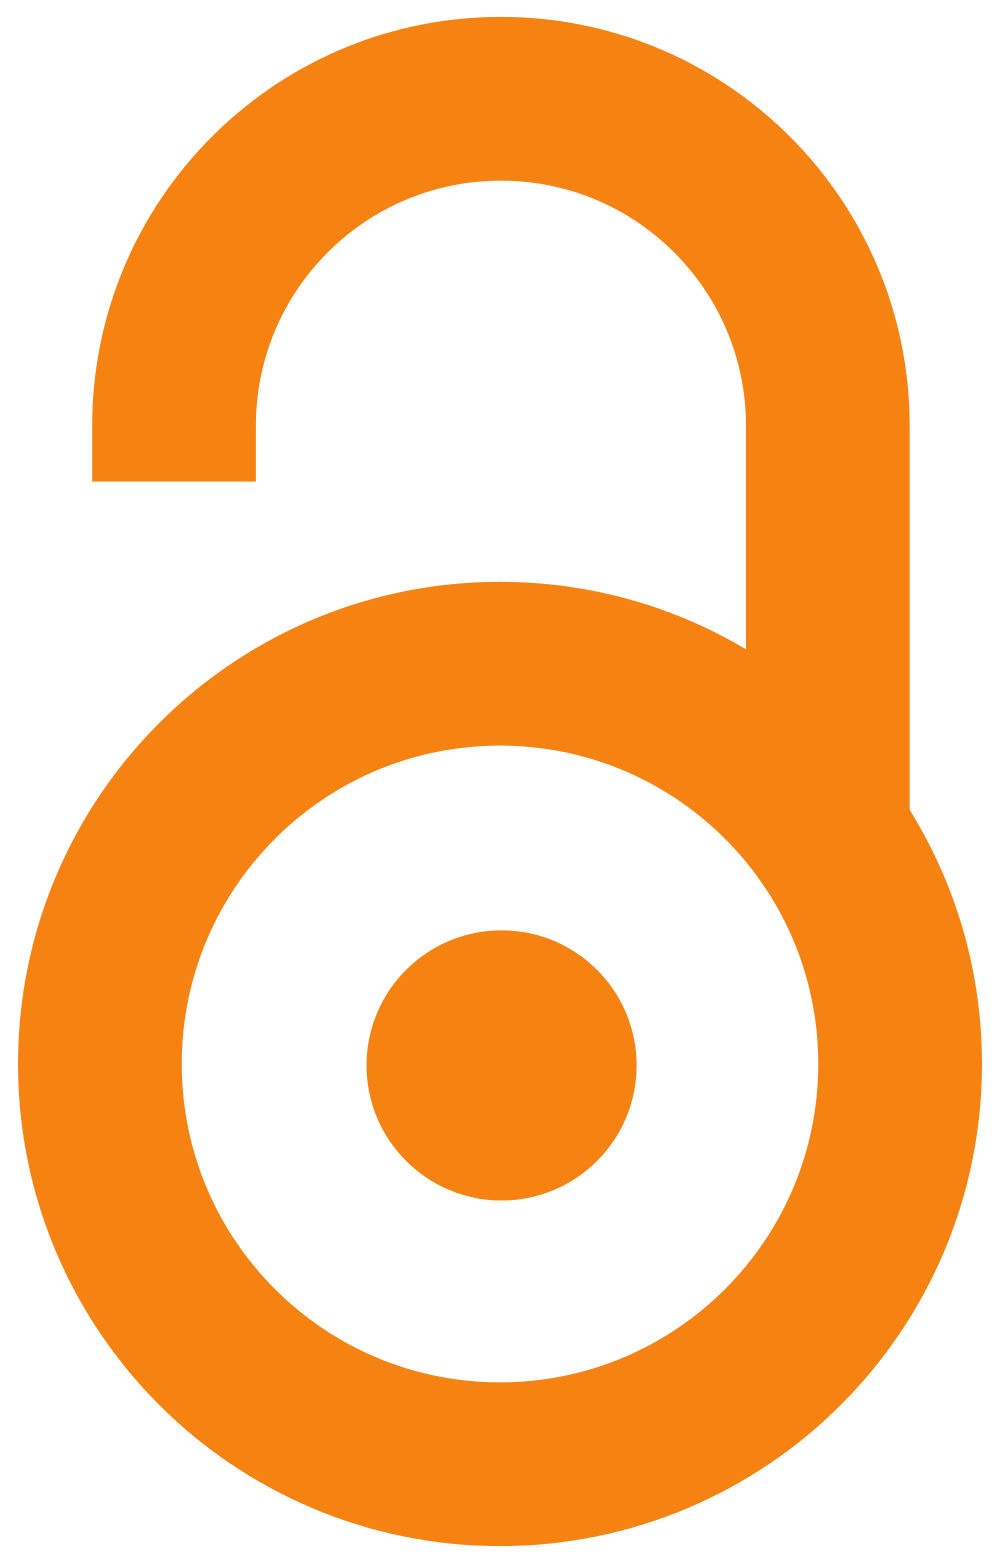 File open access logo. Transparent png circle png black and white stock